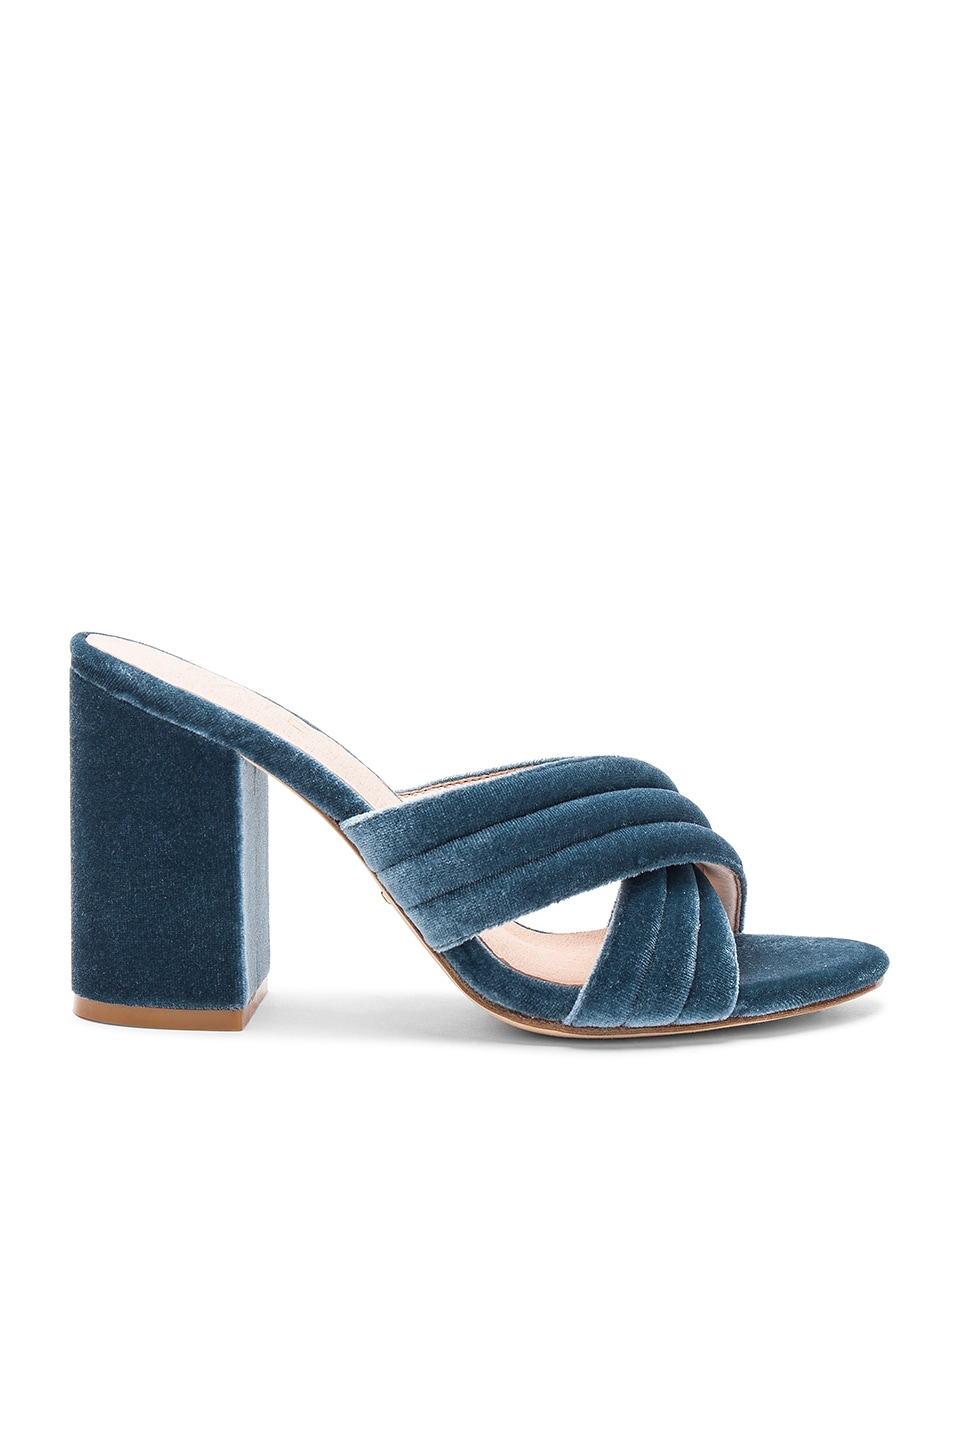 RAYE x REVOLVE Bella Mule in Dusty Blue